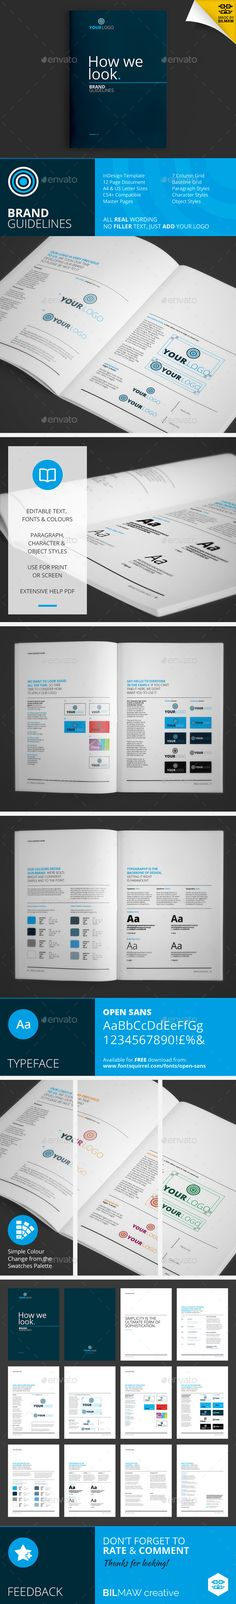 How We Look - Brand Guidelines - Corporate Brochures